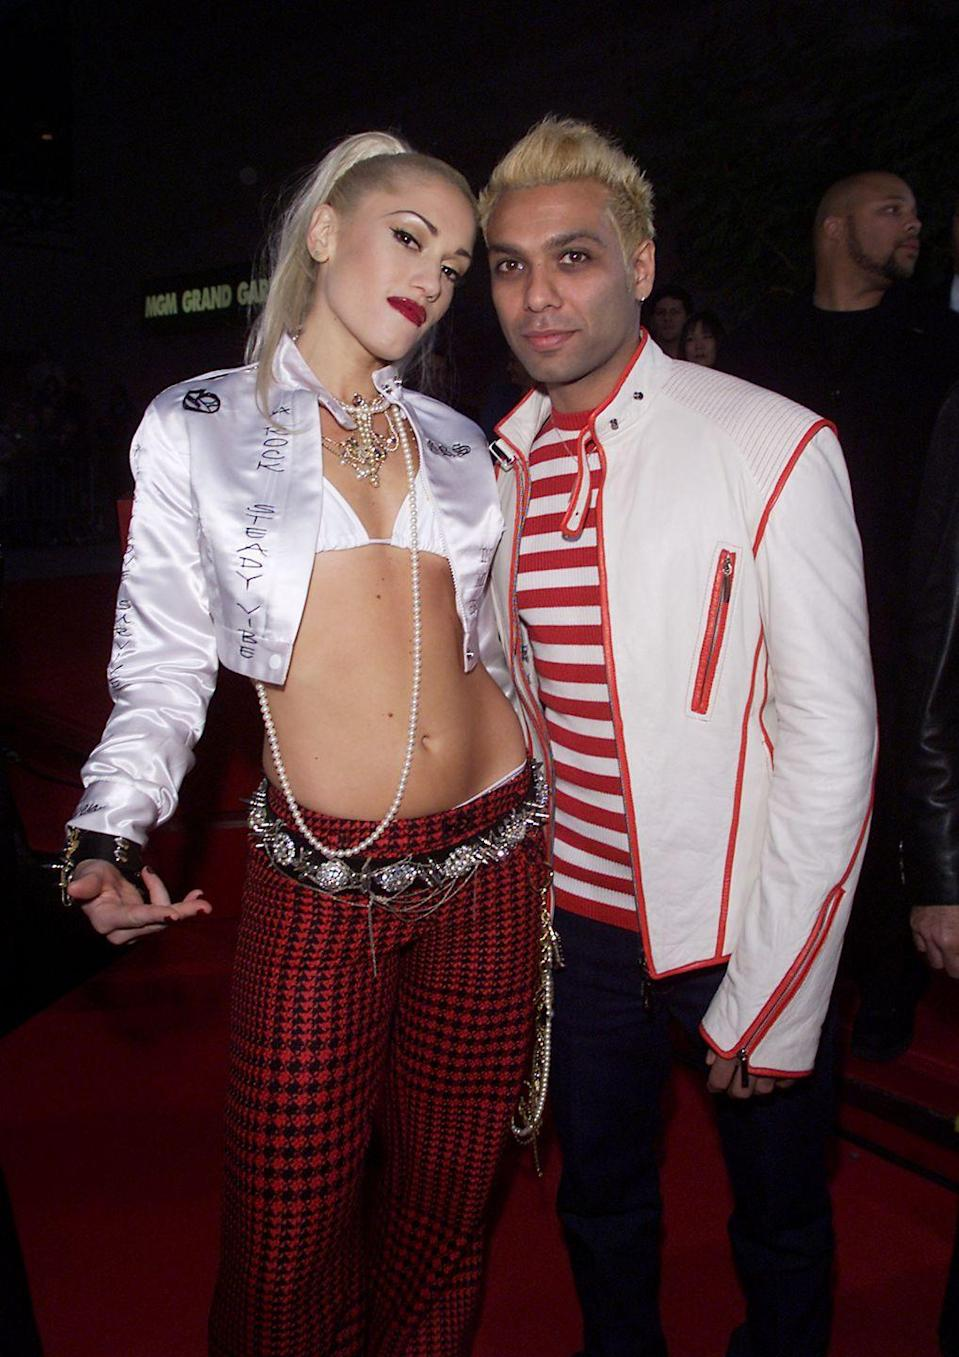 """<p>One of No Doubt's most famous hits was written by Gwen Stefani after she broke up with the group's bassist, Tony Kanal. """"It used to be more upbeat, more of a Seventies rock-type thing,"""" she told <a href=""""https://www.independent.co.uk/arts-entertainment/music/features/story-of-the-song-dont-speak-no-doubt-1996-2044589.html"""" rel=""""nofollow noopener"""" target=""""_blank"""" data-ylk=""""slk:The Independent"""" class=""""link rapid-noclick-resp"""">The Independent</a>. """"[When] Tony and I broke up ... it turned into a sad song."""" </p>"""